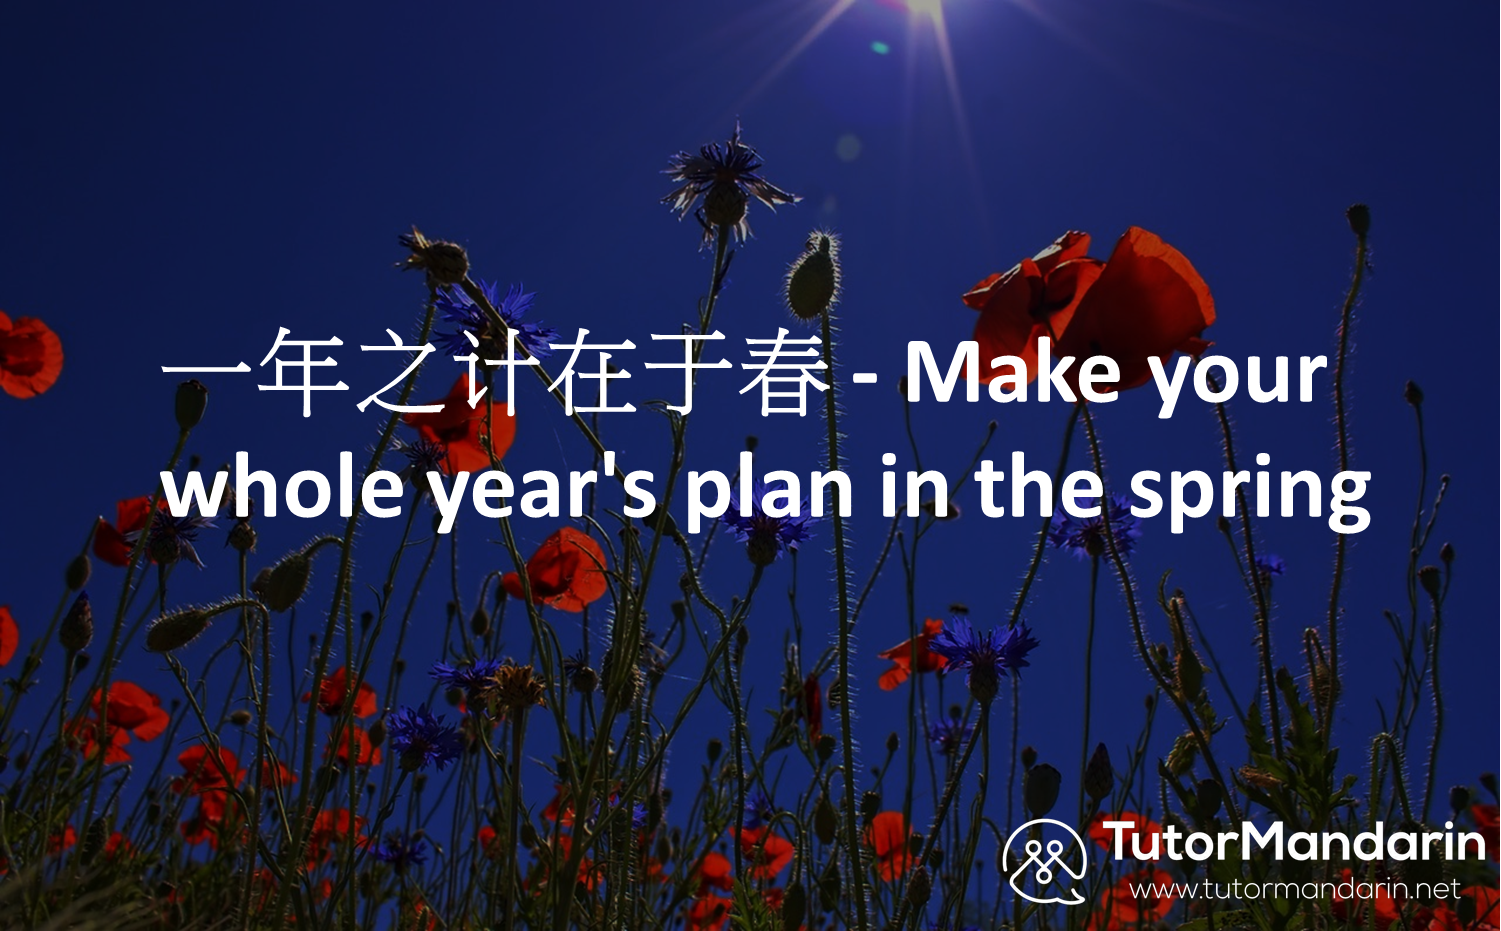 Make your whole year's plan in Spring/ tutormandarin